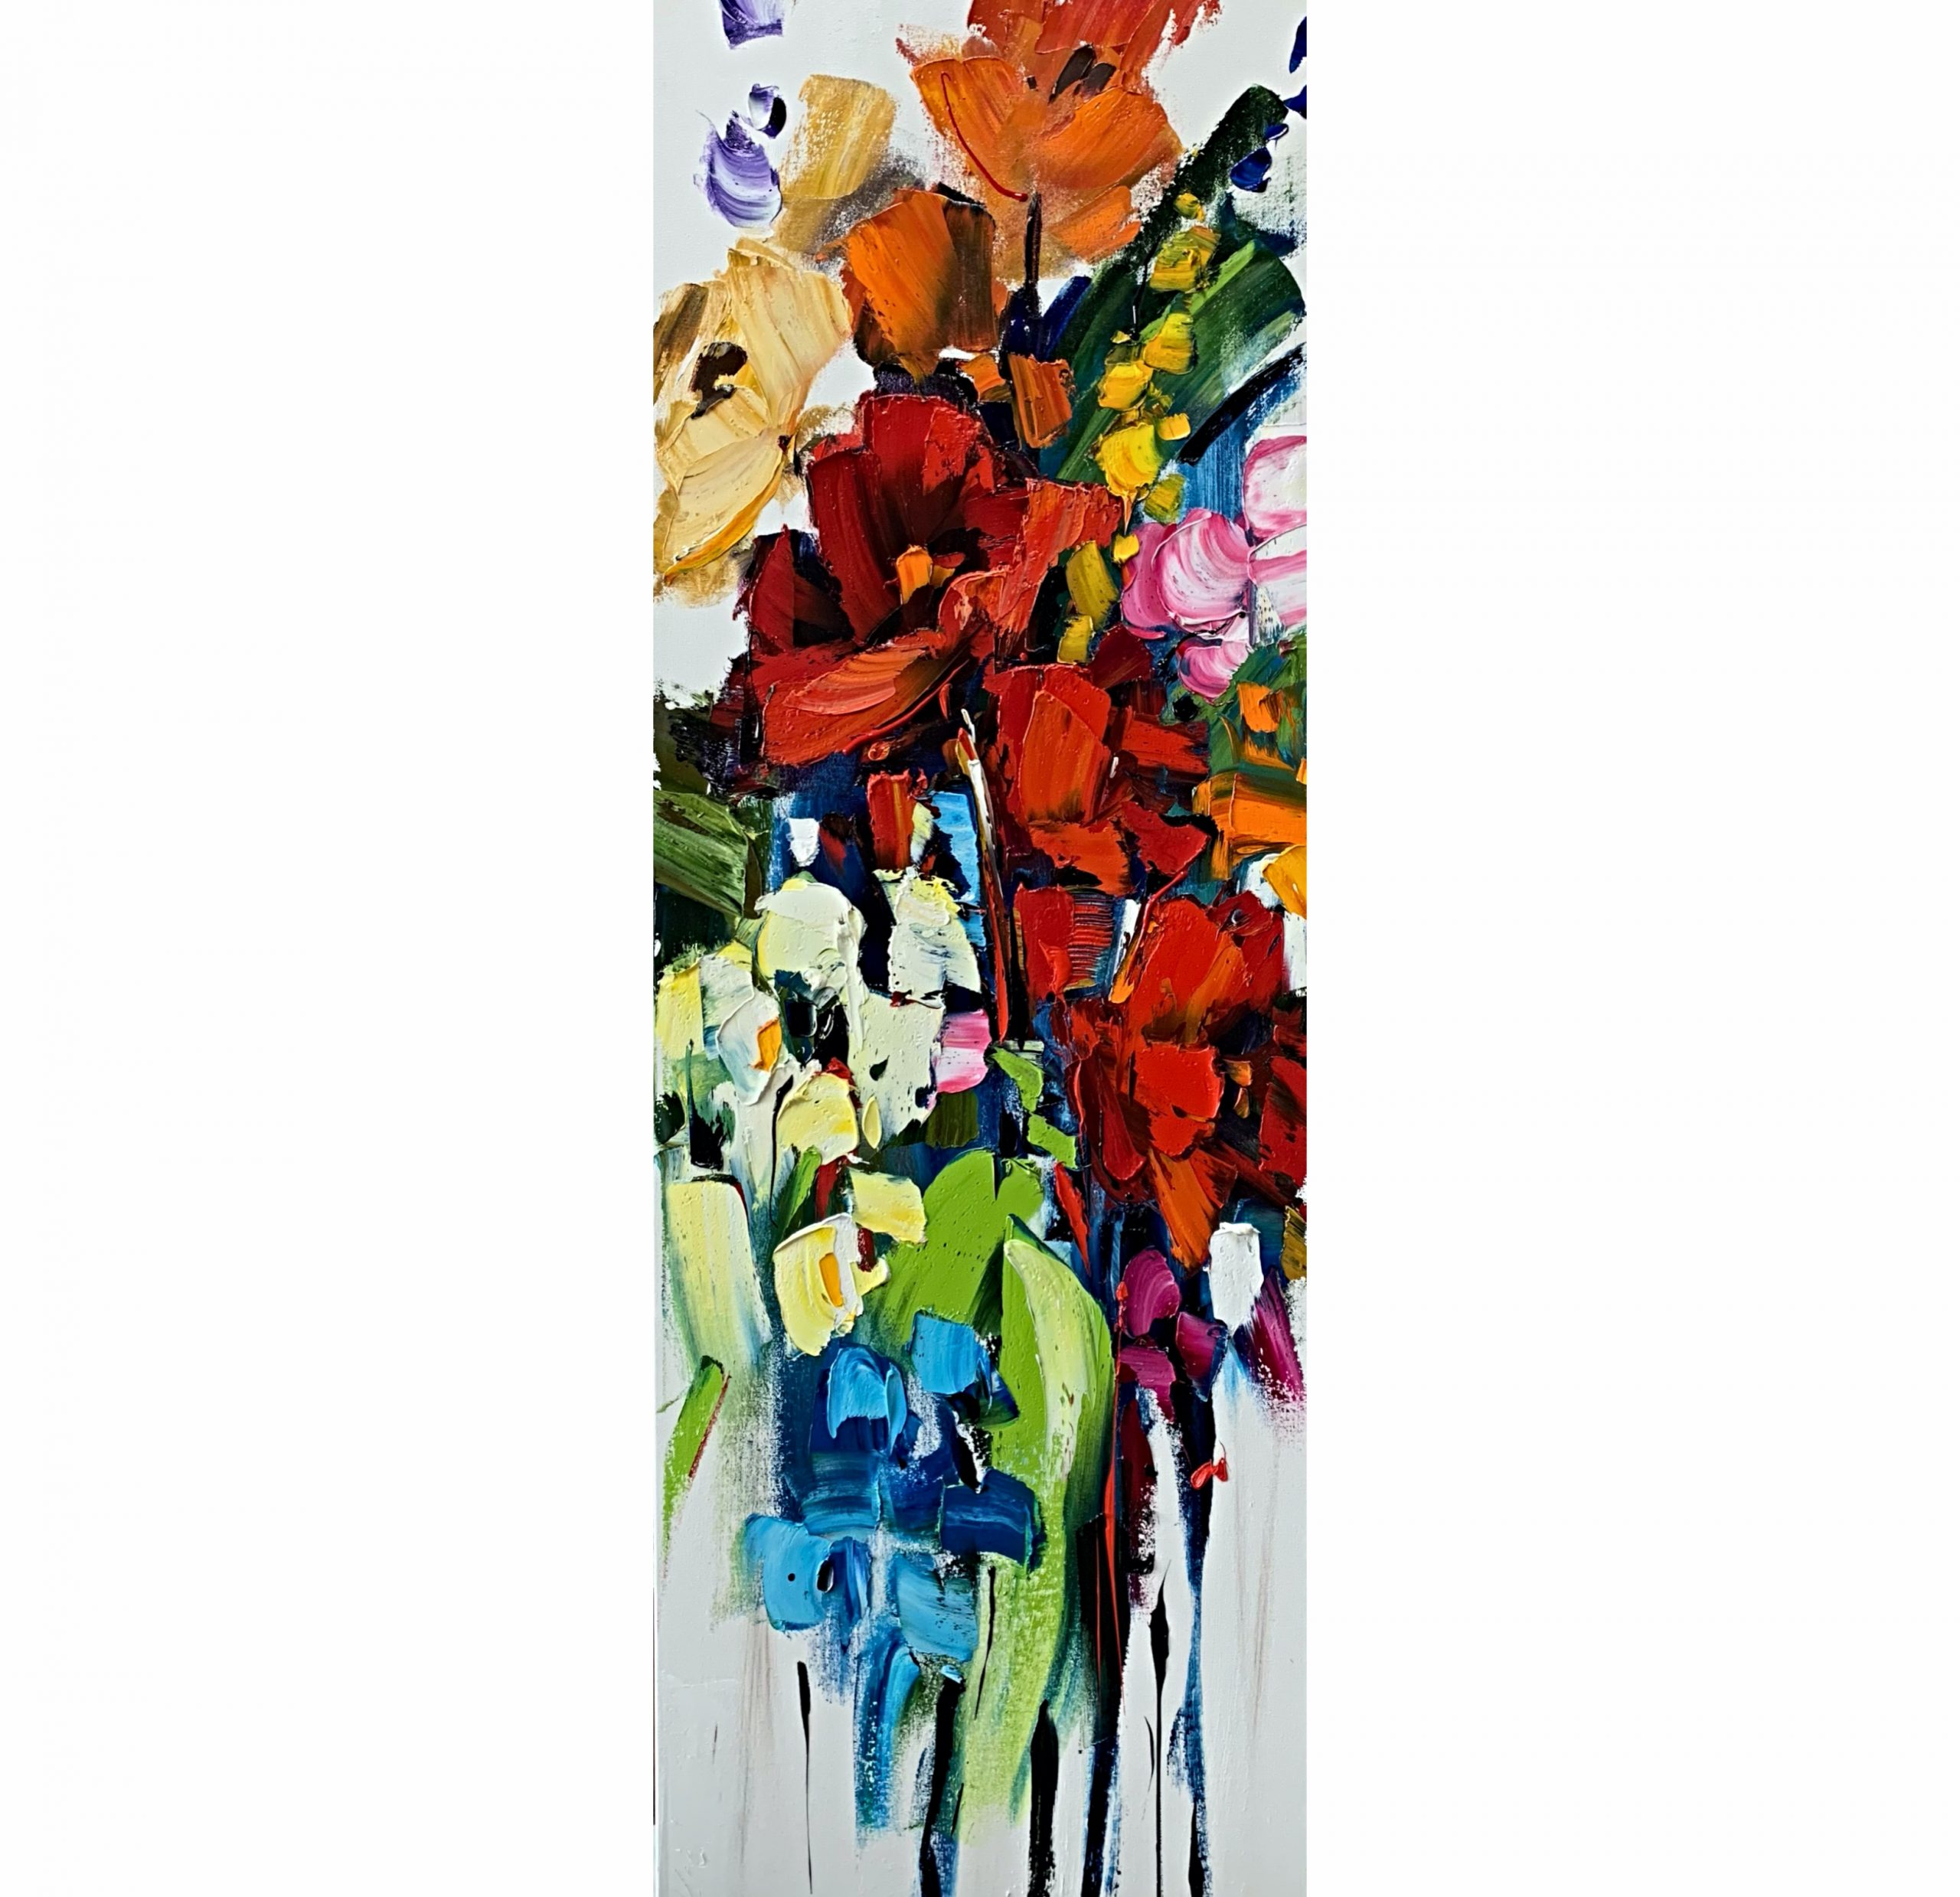 How Does Your Garden Grow, oil flower painting by Kimberly Kiel | Effusion Art Gallery + Cast Glass Studio, Invermere BC